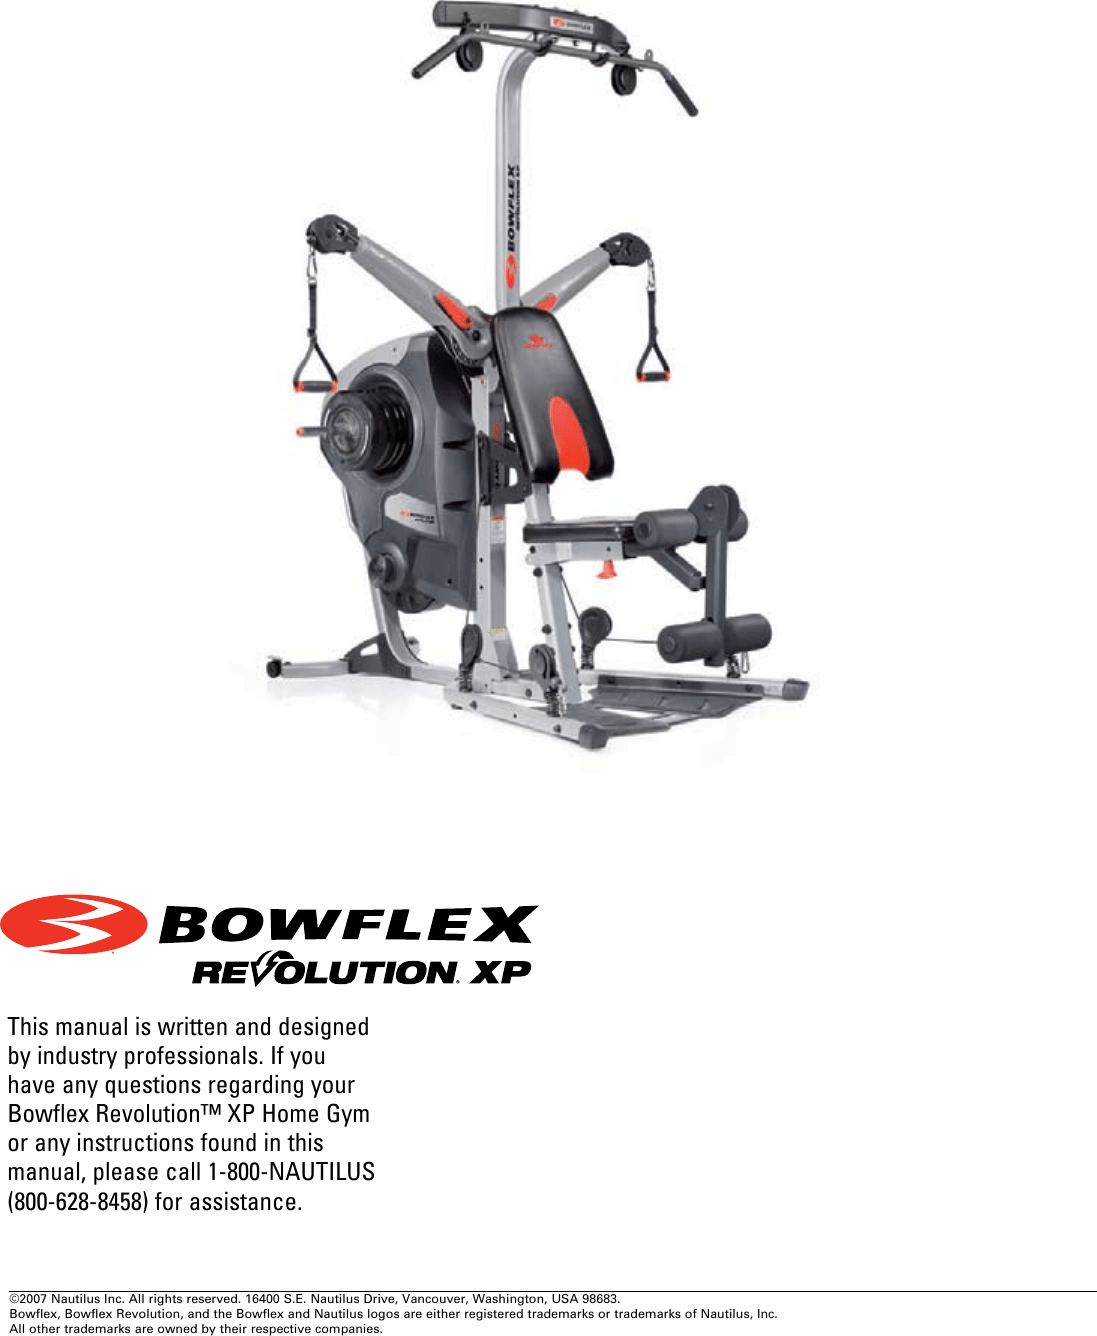 Bowflex Revolution Xp Lat Tower Owner S Manual